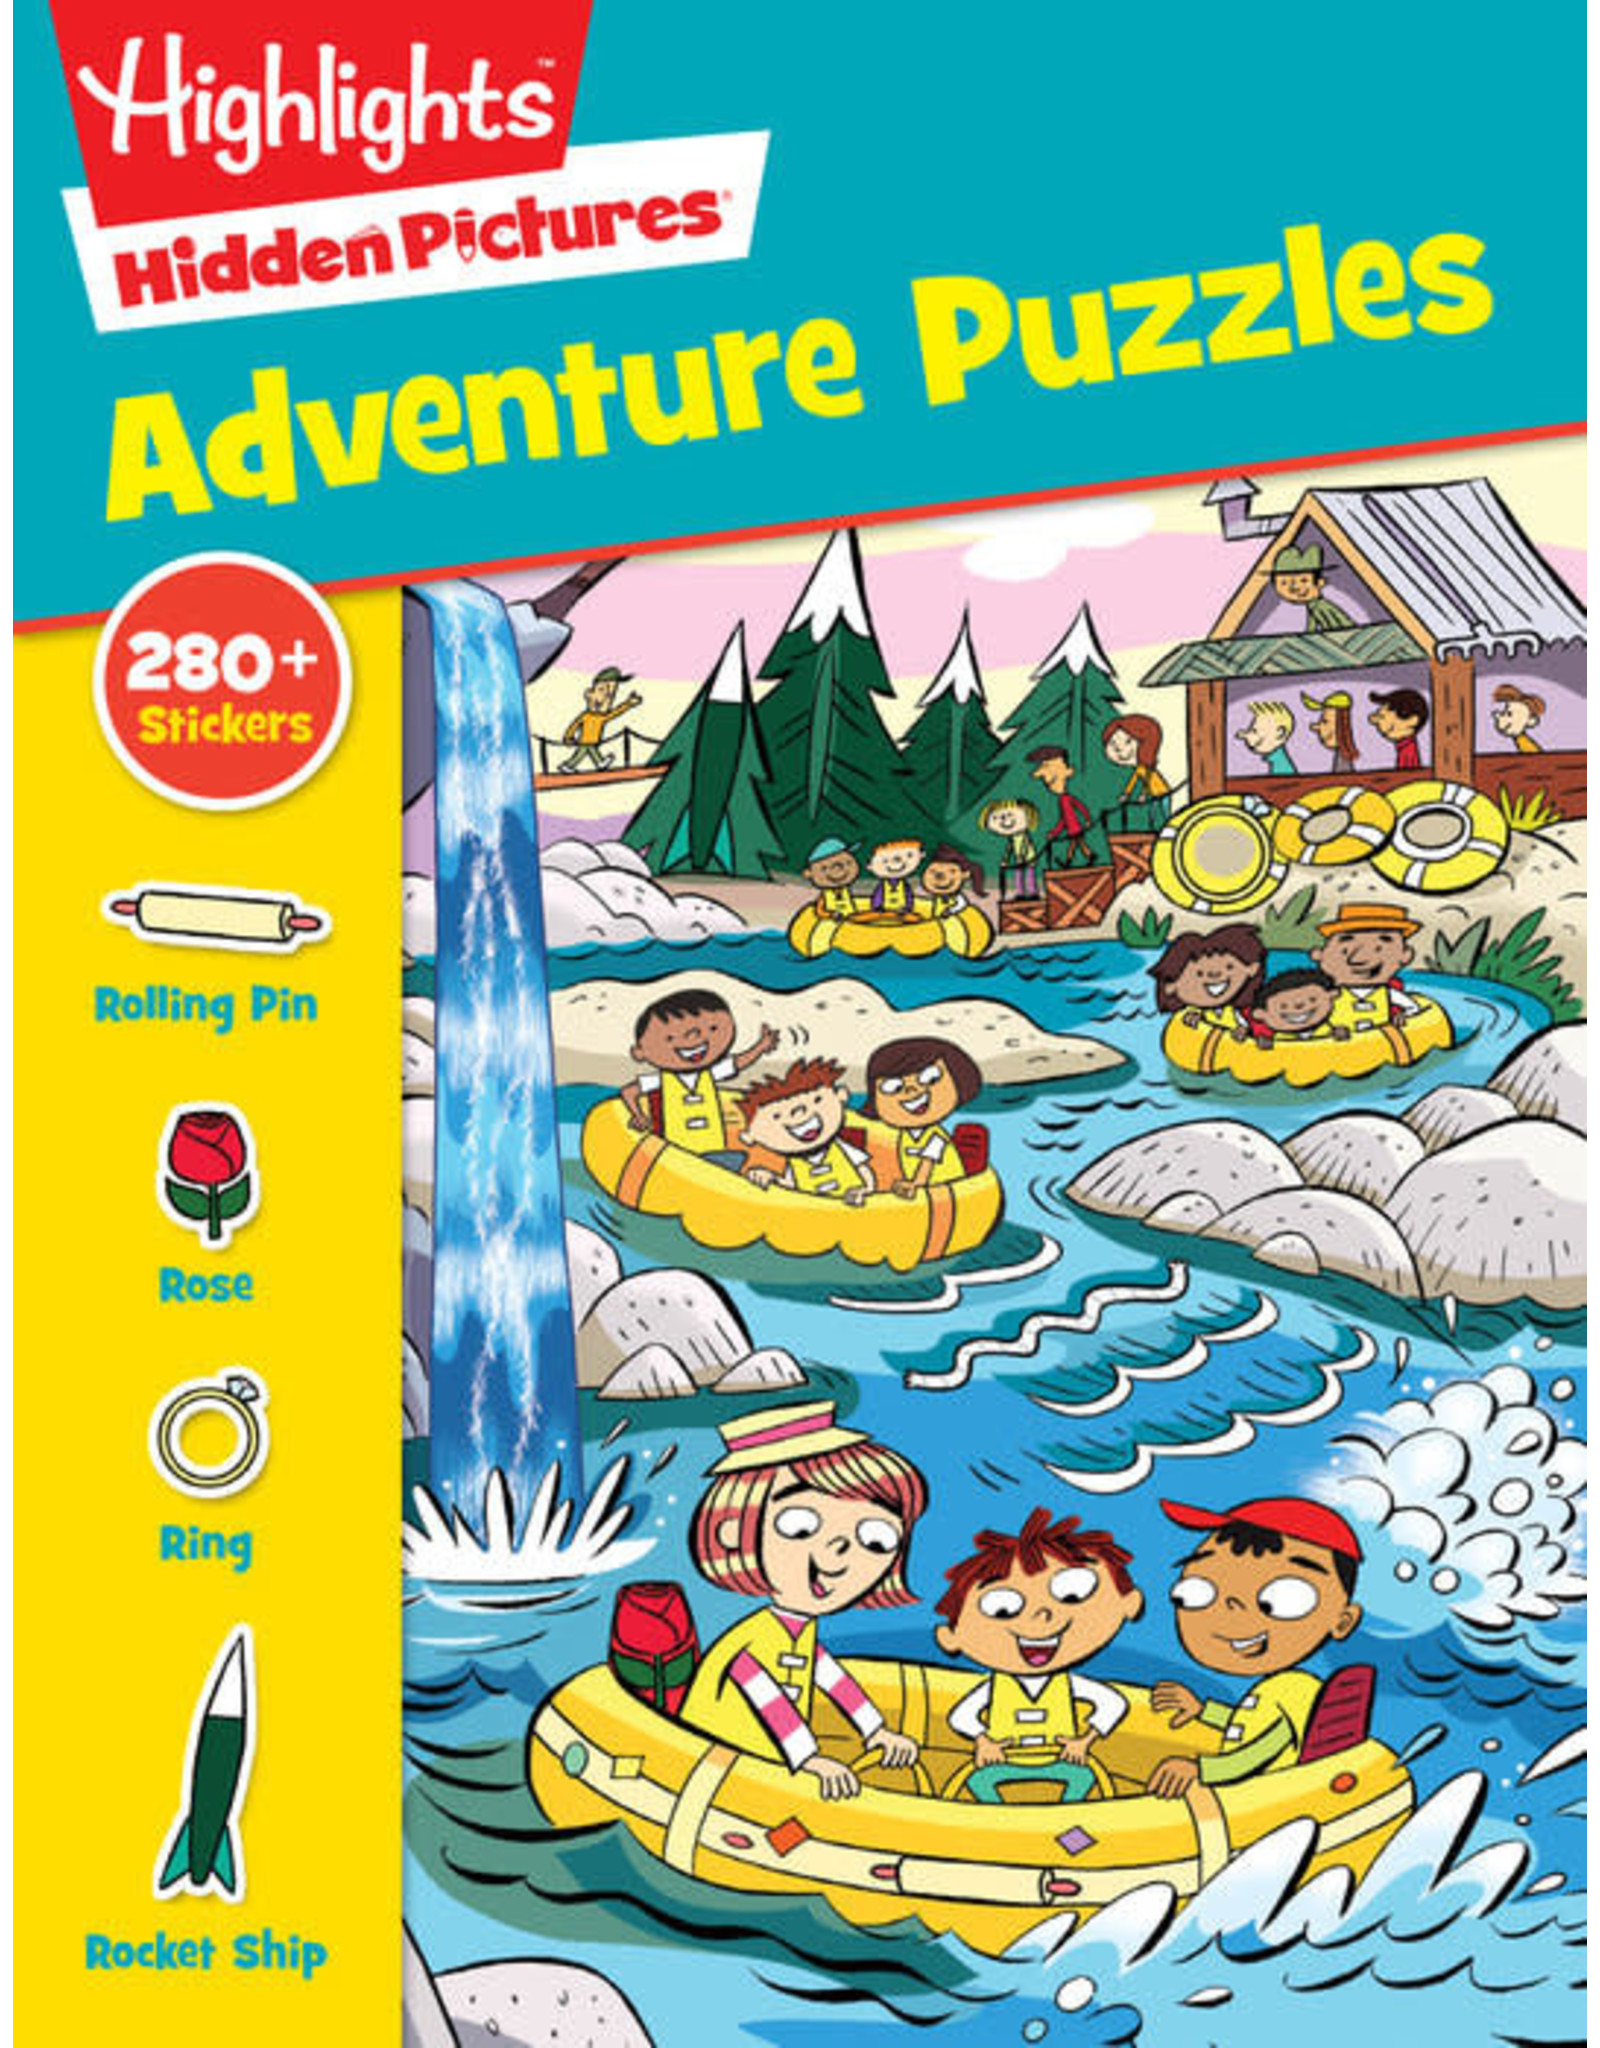 Highlights Highlights Hidden Pictures Adventure Puzzles